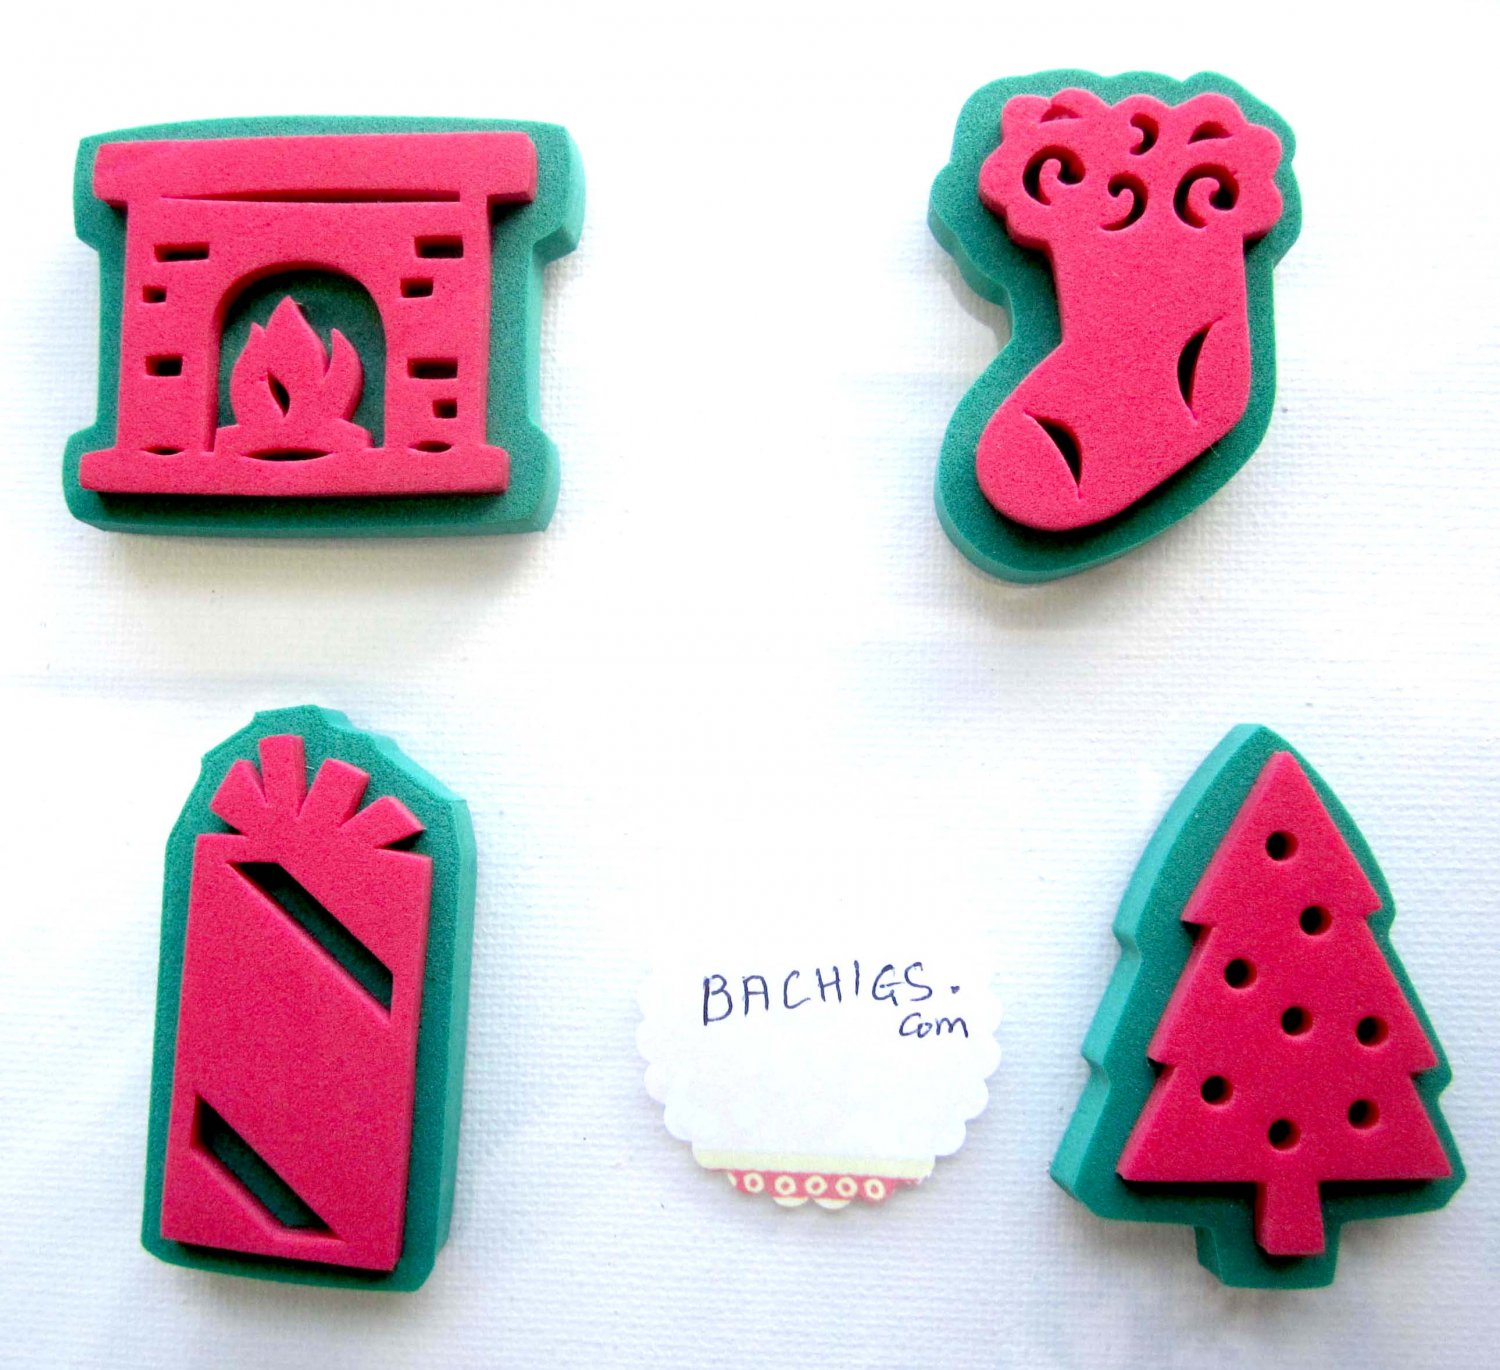 Christmas stamps set fireplace stocking gift tree for scrapbooking and diy notecards